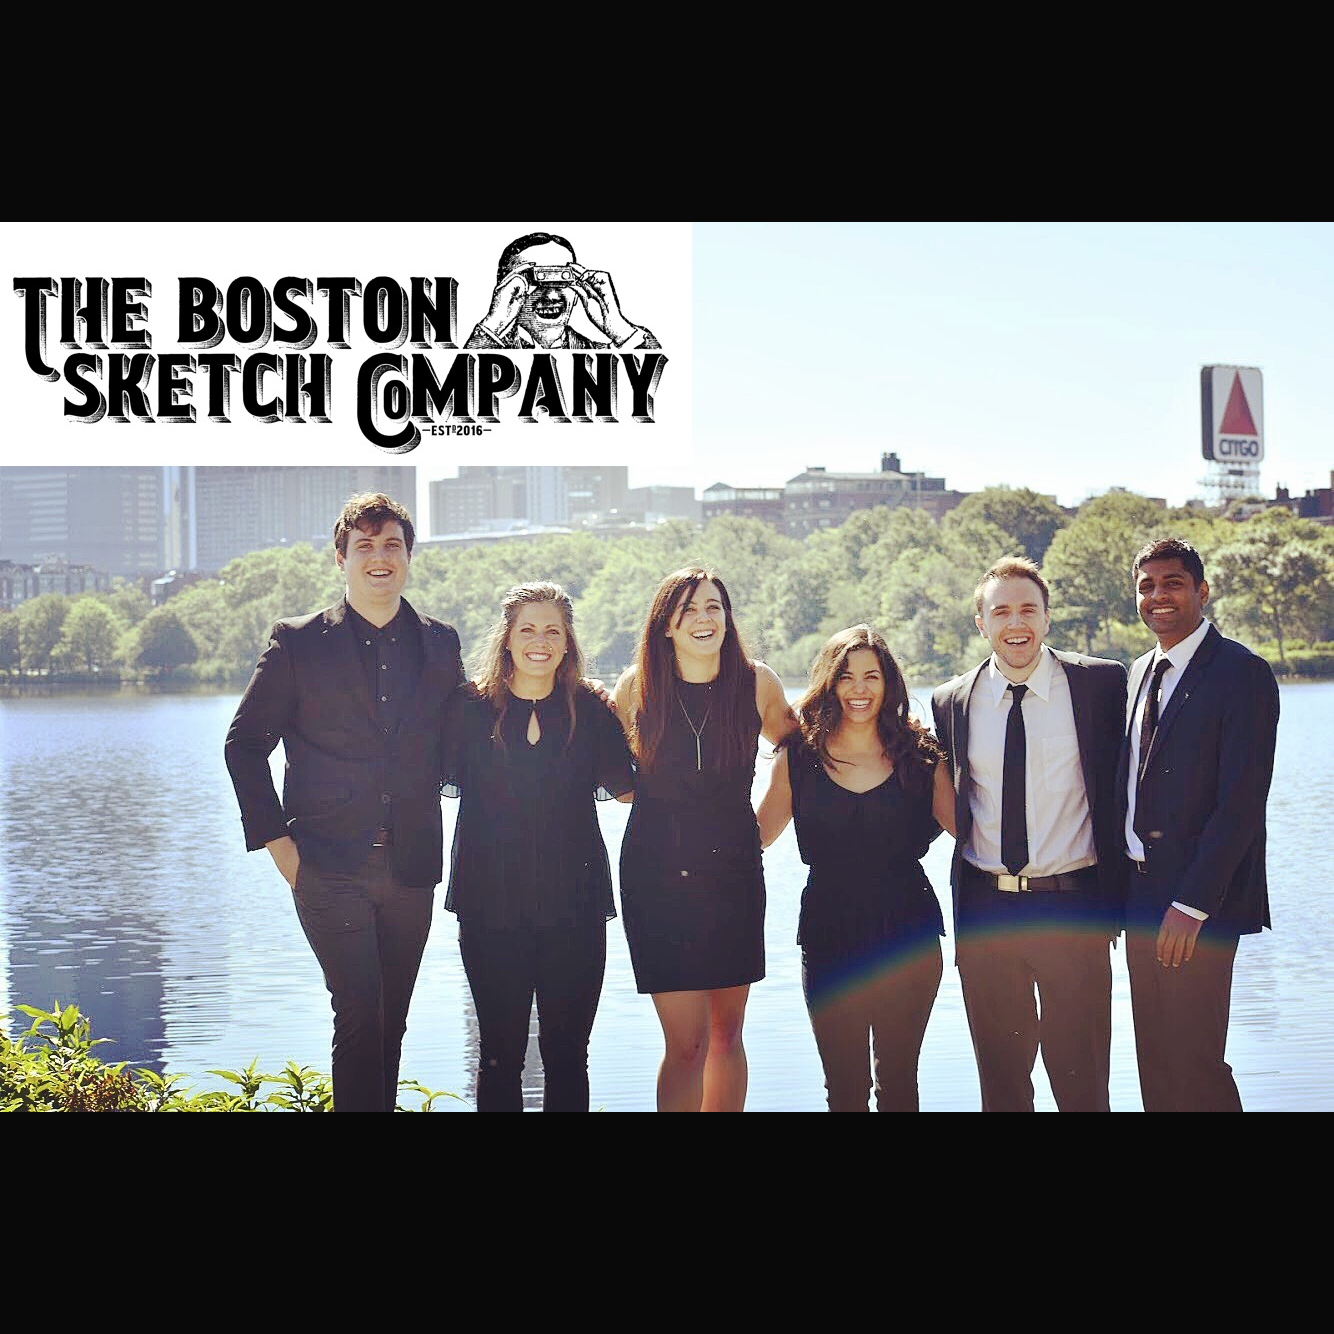 The Boston Sketch Company sq.png